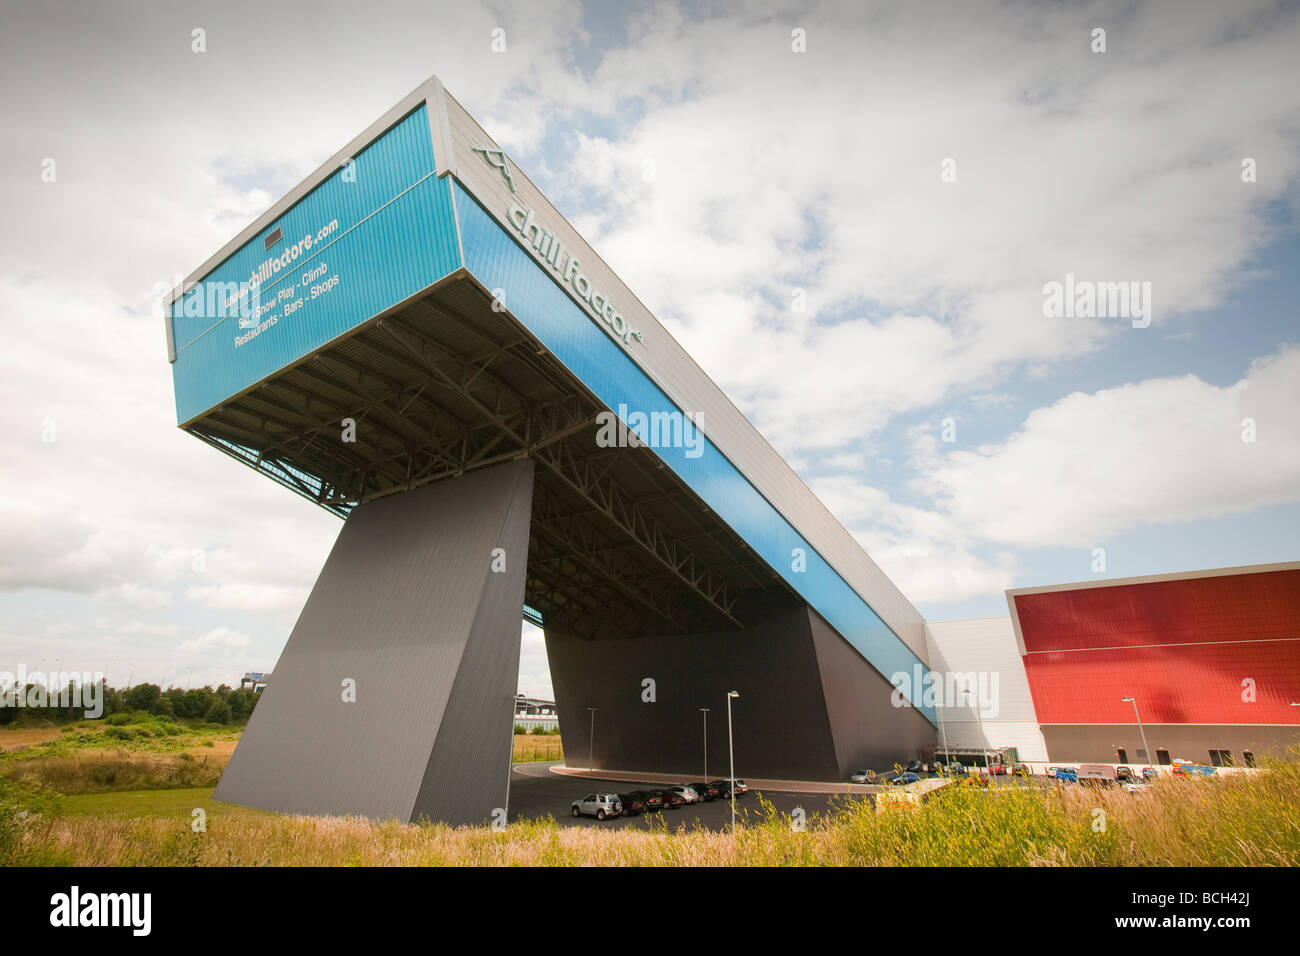 The Chill Factor an indoor skiing area in Manchester UK - Stock Image